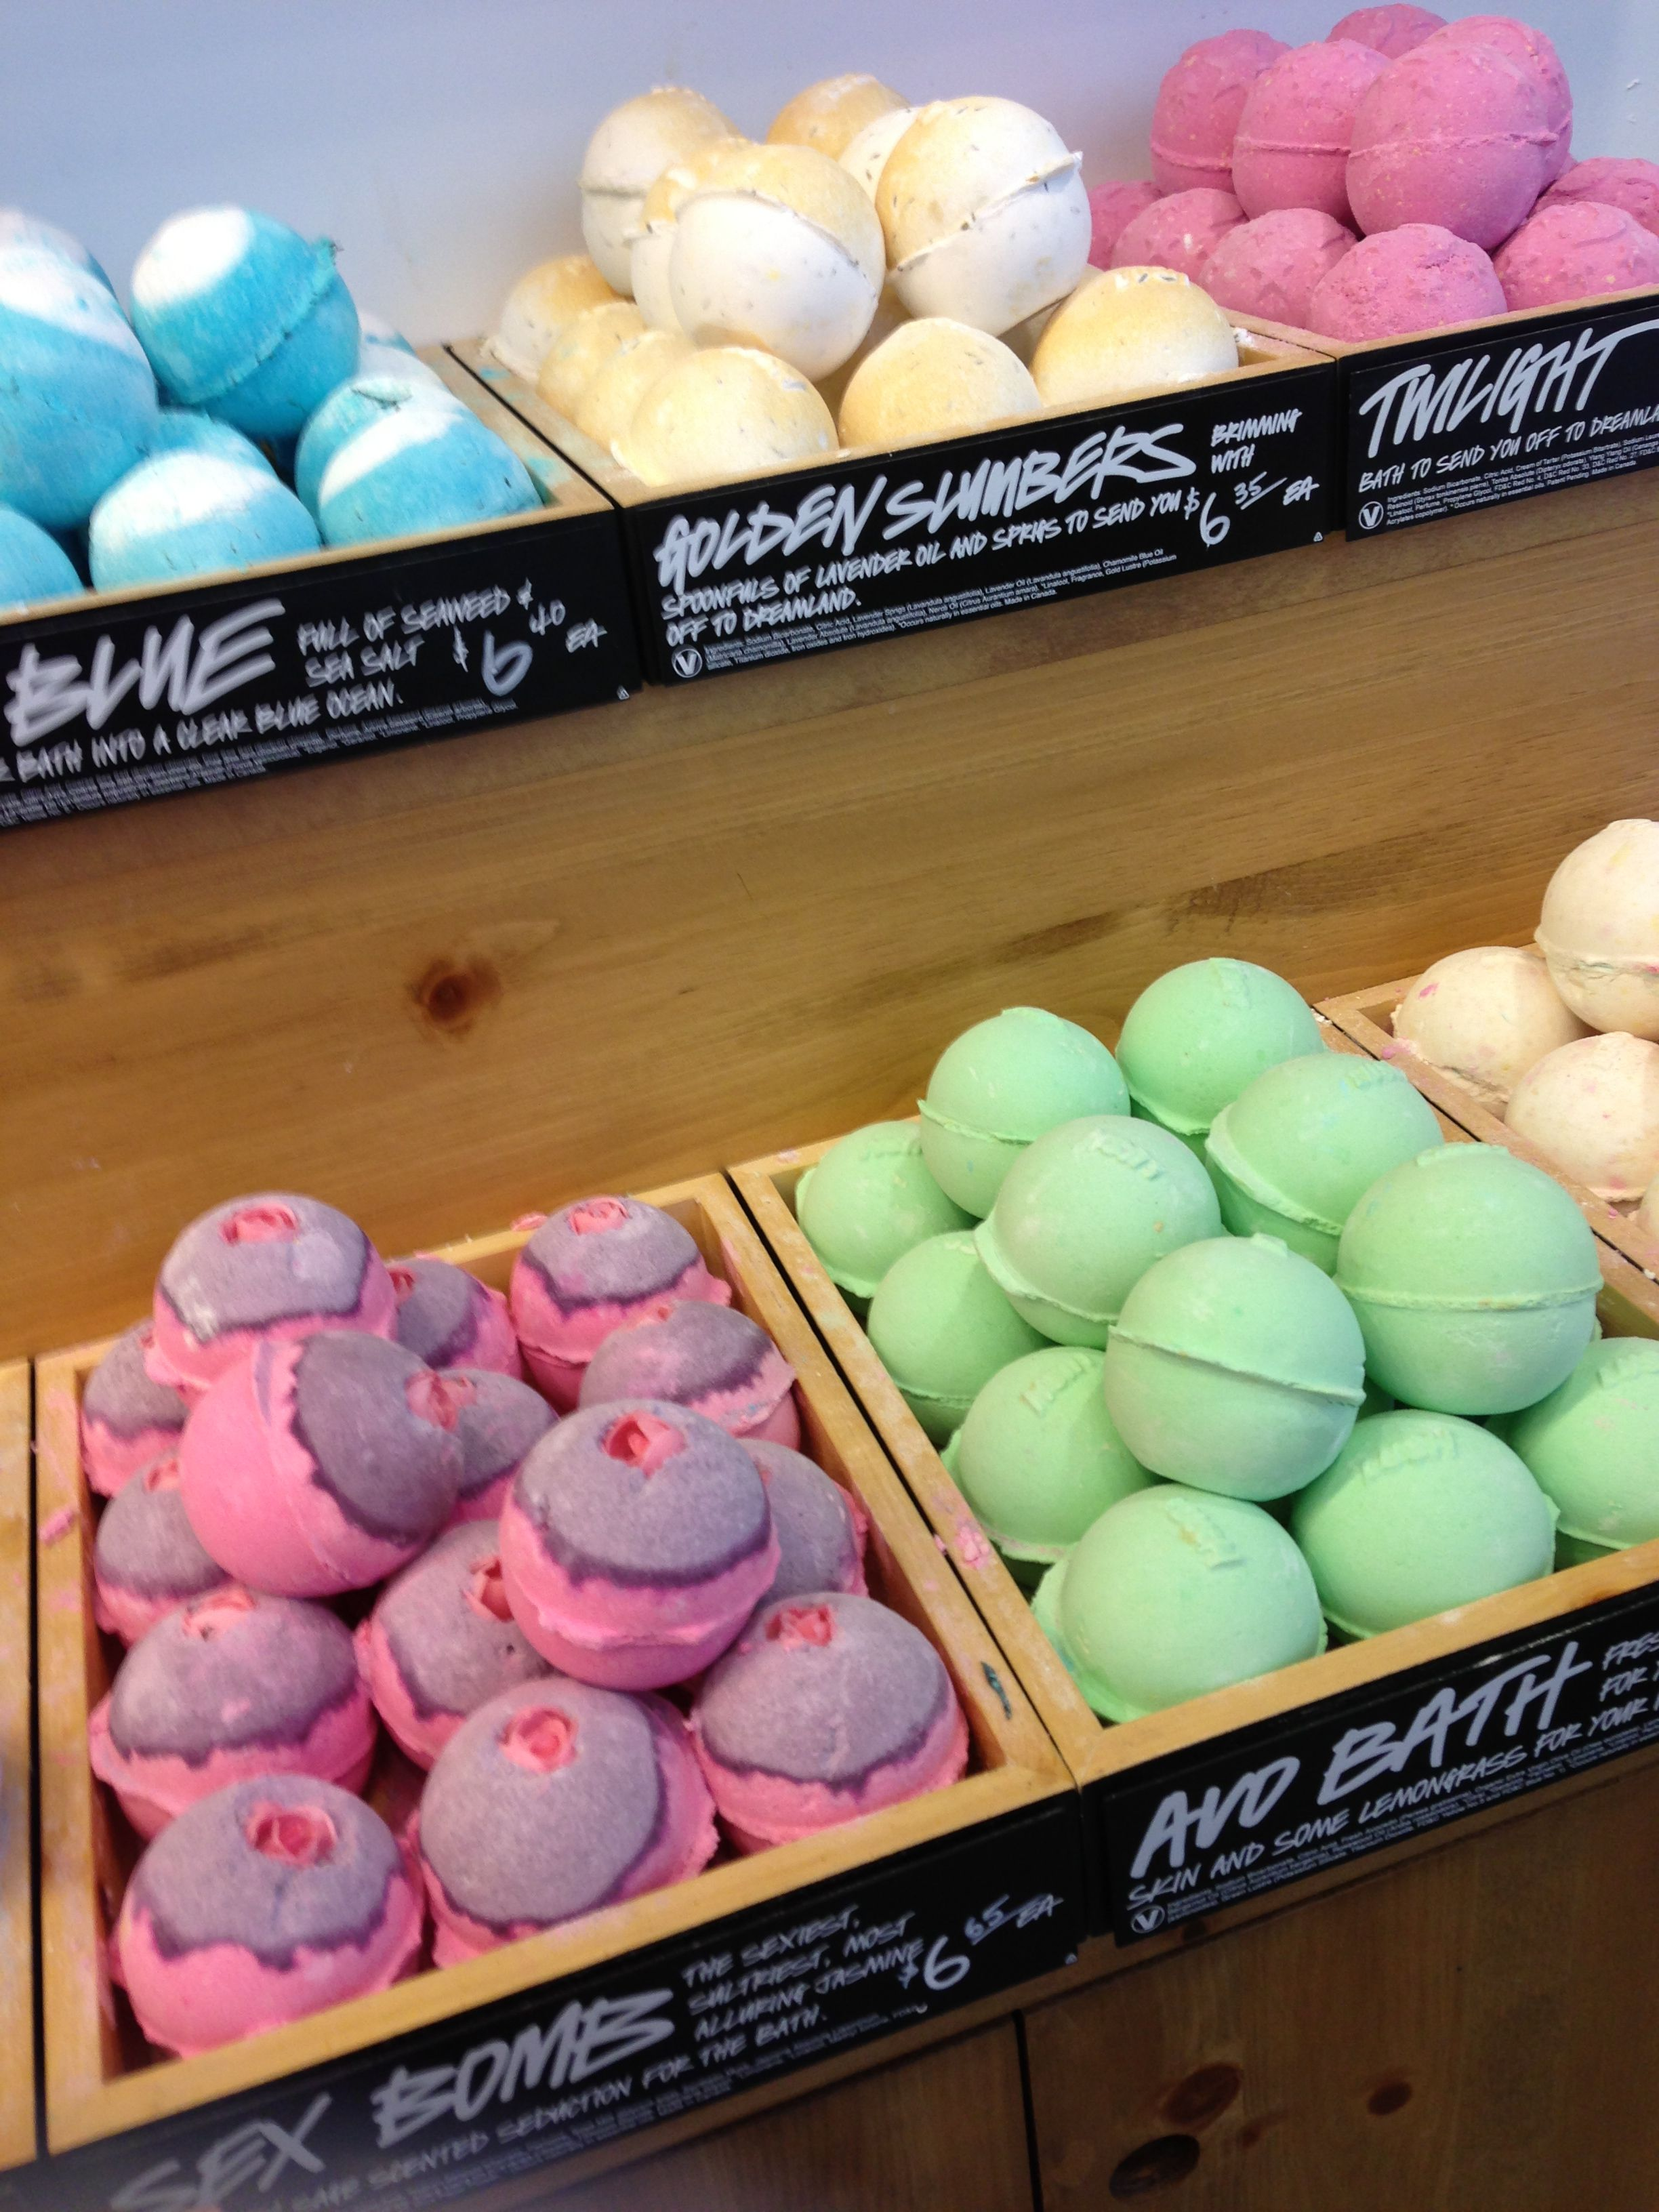 I Love Lush Cosmetics They Smell Good Make Your Hair And Skin Feel Awesome And Look Nice I So Wanna Try These O Lush Products Lush Bath Bombs Lush Cosmetics